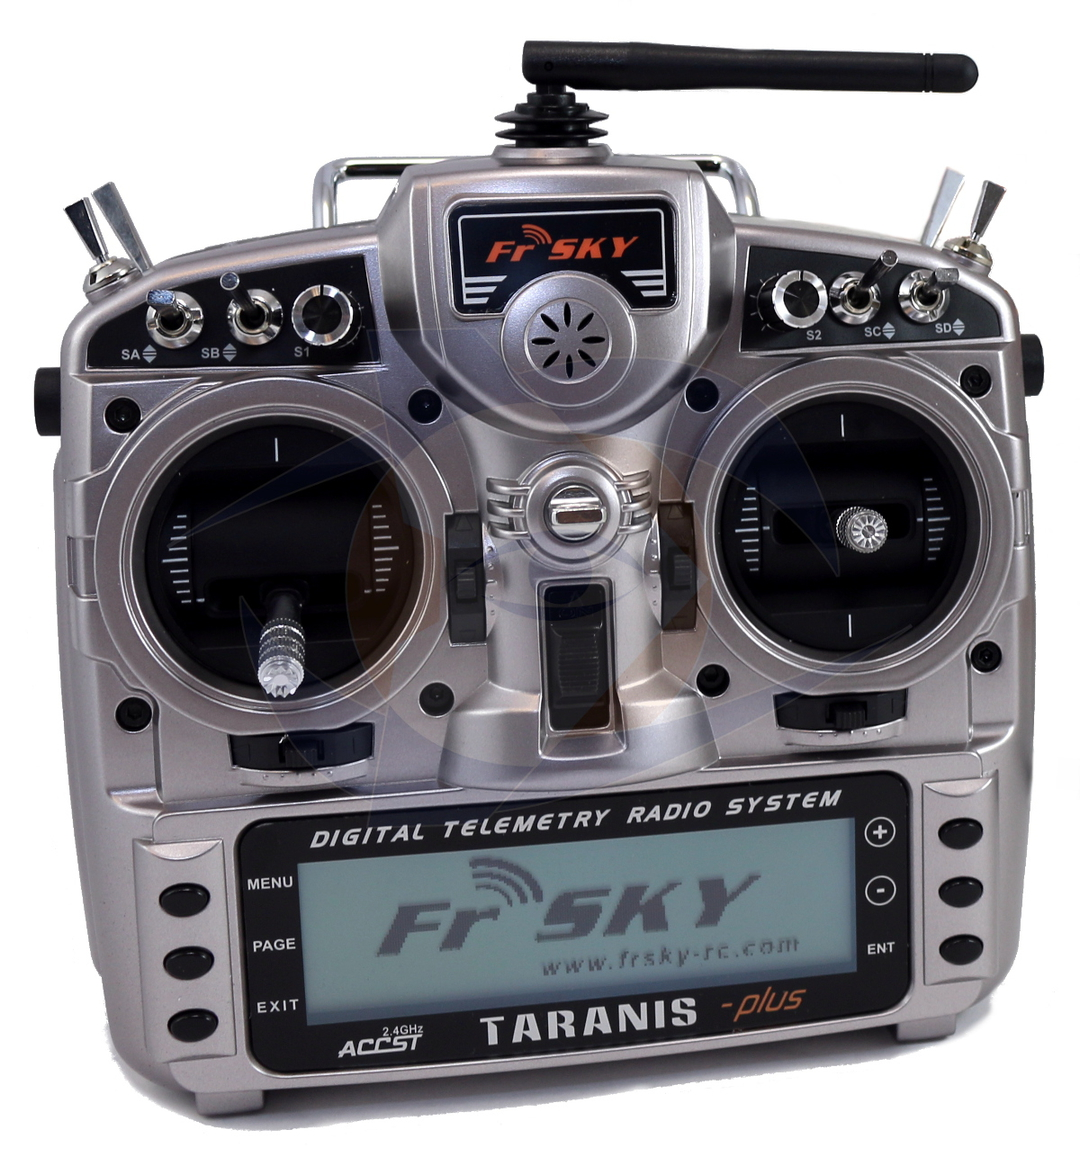 Frsky Taranis X9d Plus Boxed Mode 2 Pick Your Receiver Combo Www 4ch Remote Control Circuit Board Pcb Transmitter Receives Antenna Toys